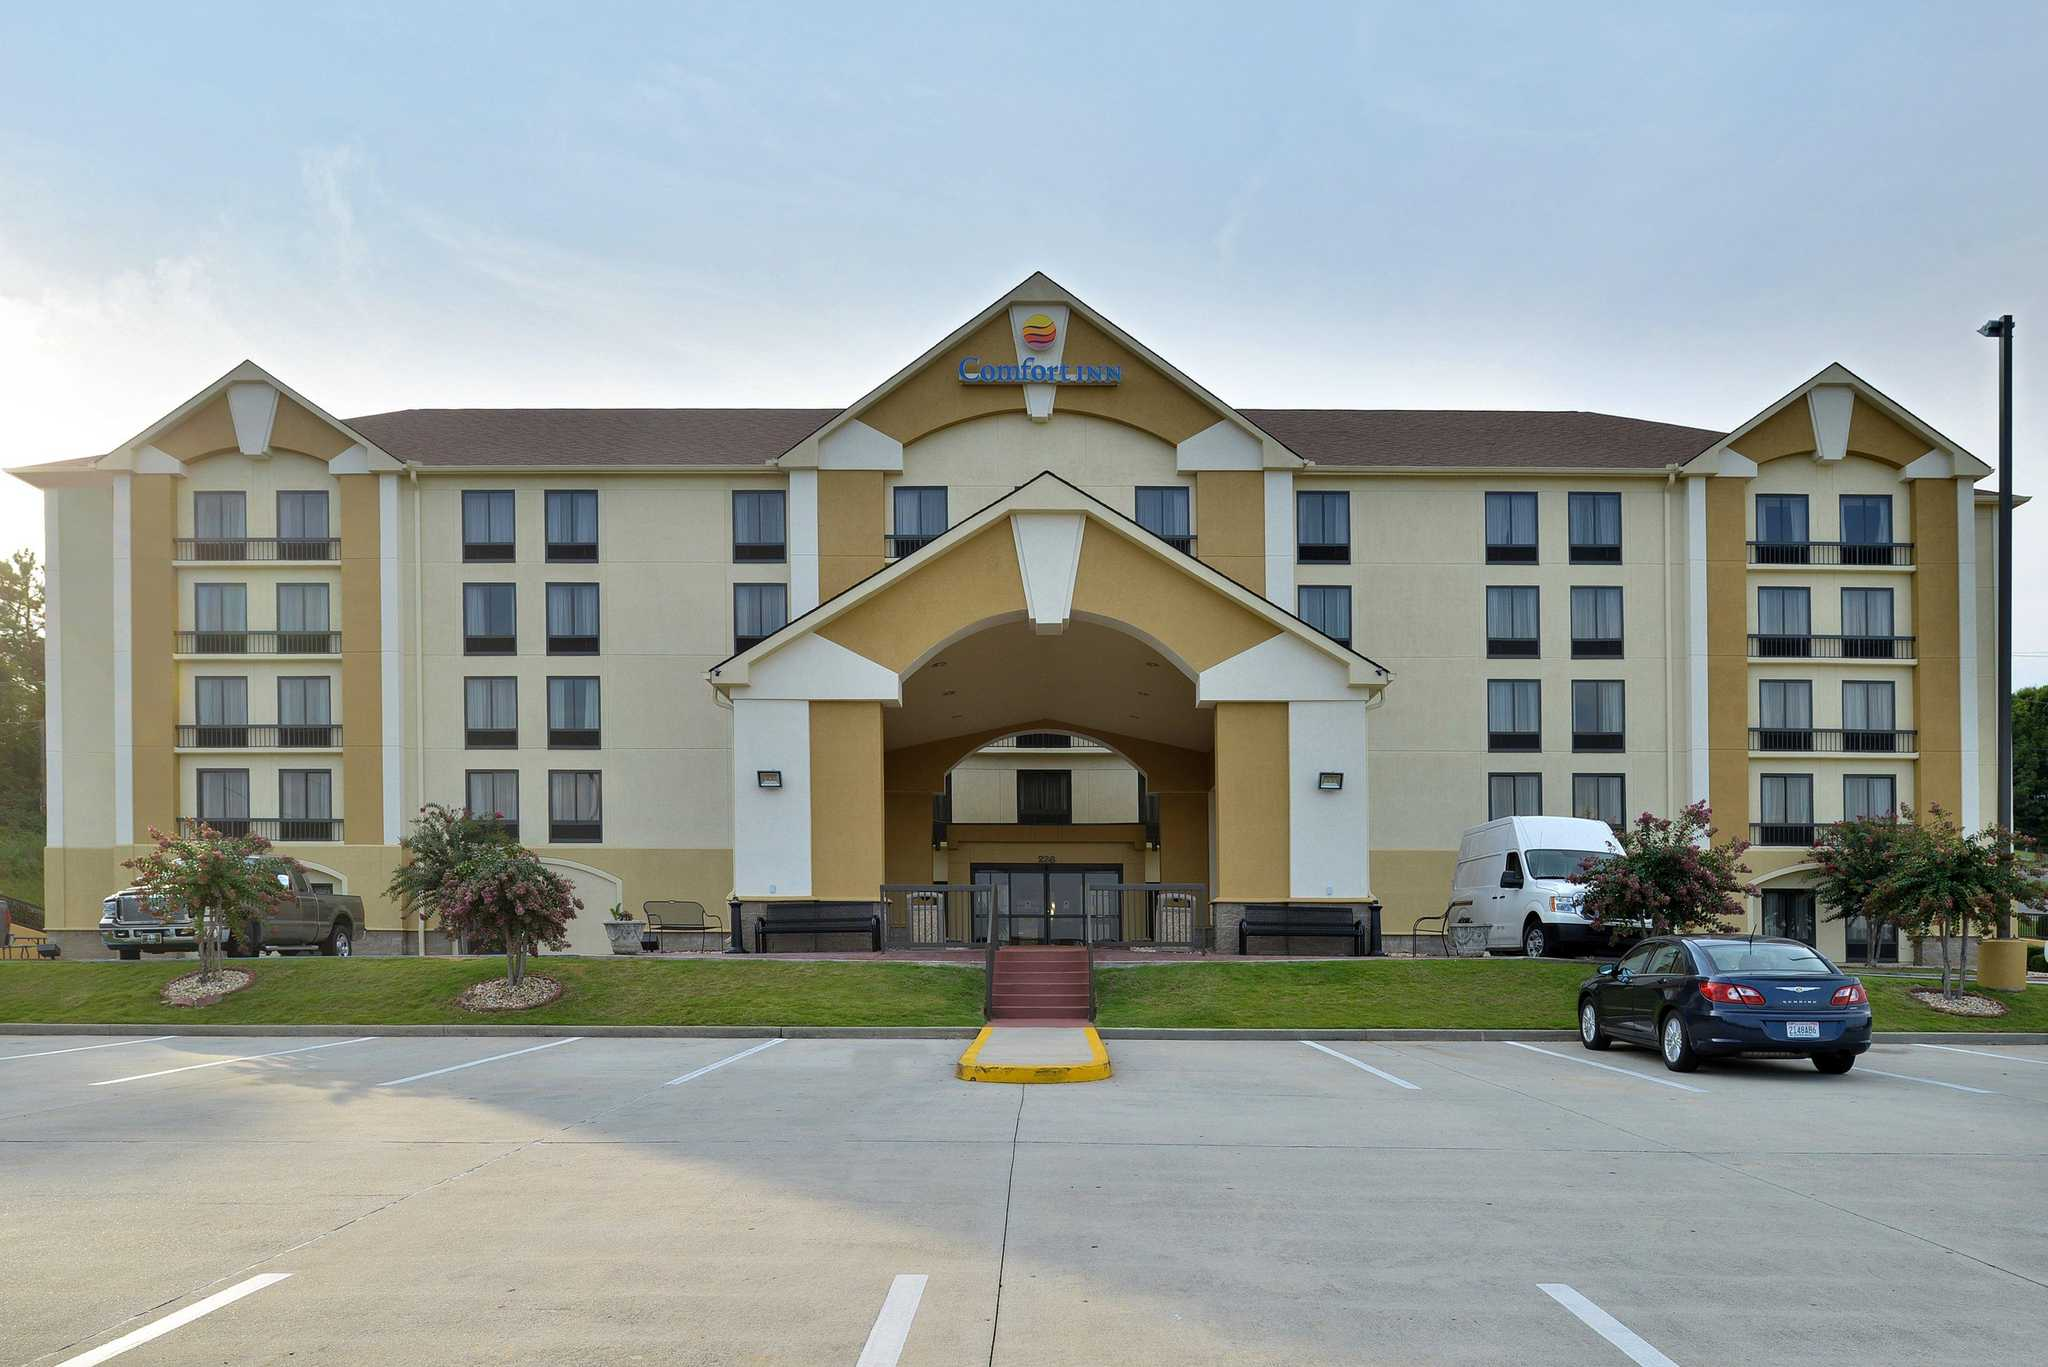 Book the Comfort Inn - Located in the heart of Birmingham, this hotel is within 3 mi (5 km) of Red Mountain Park, Vulcan Park and Museum, and Samford University. Alabama Men's Hall 4/5().